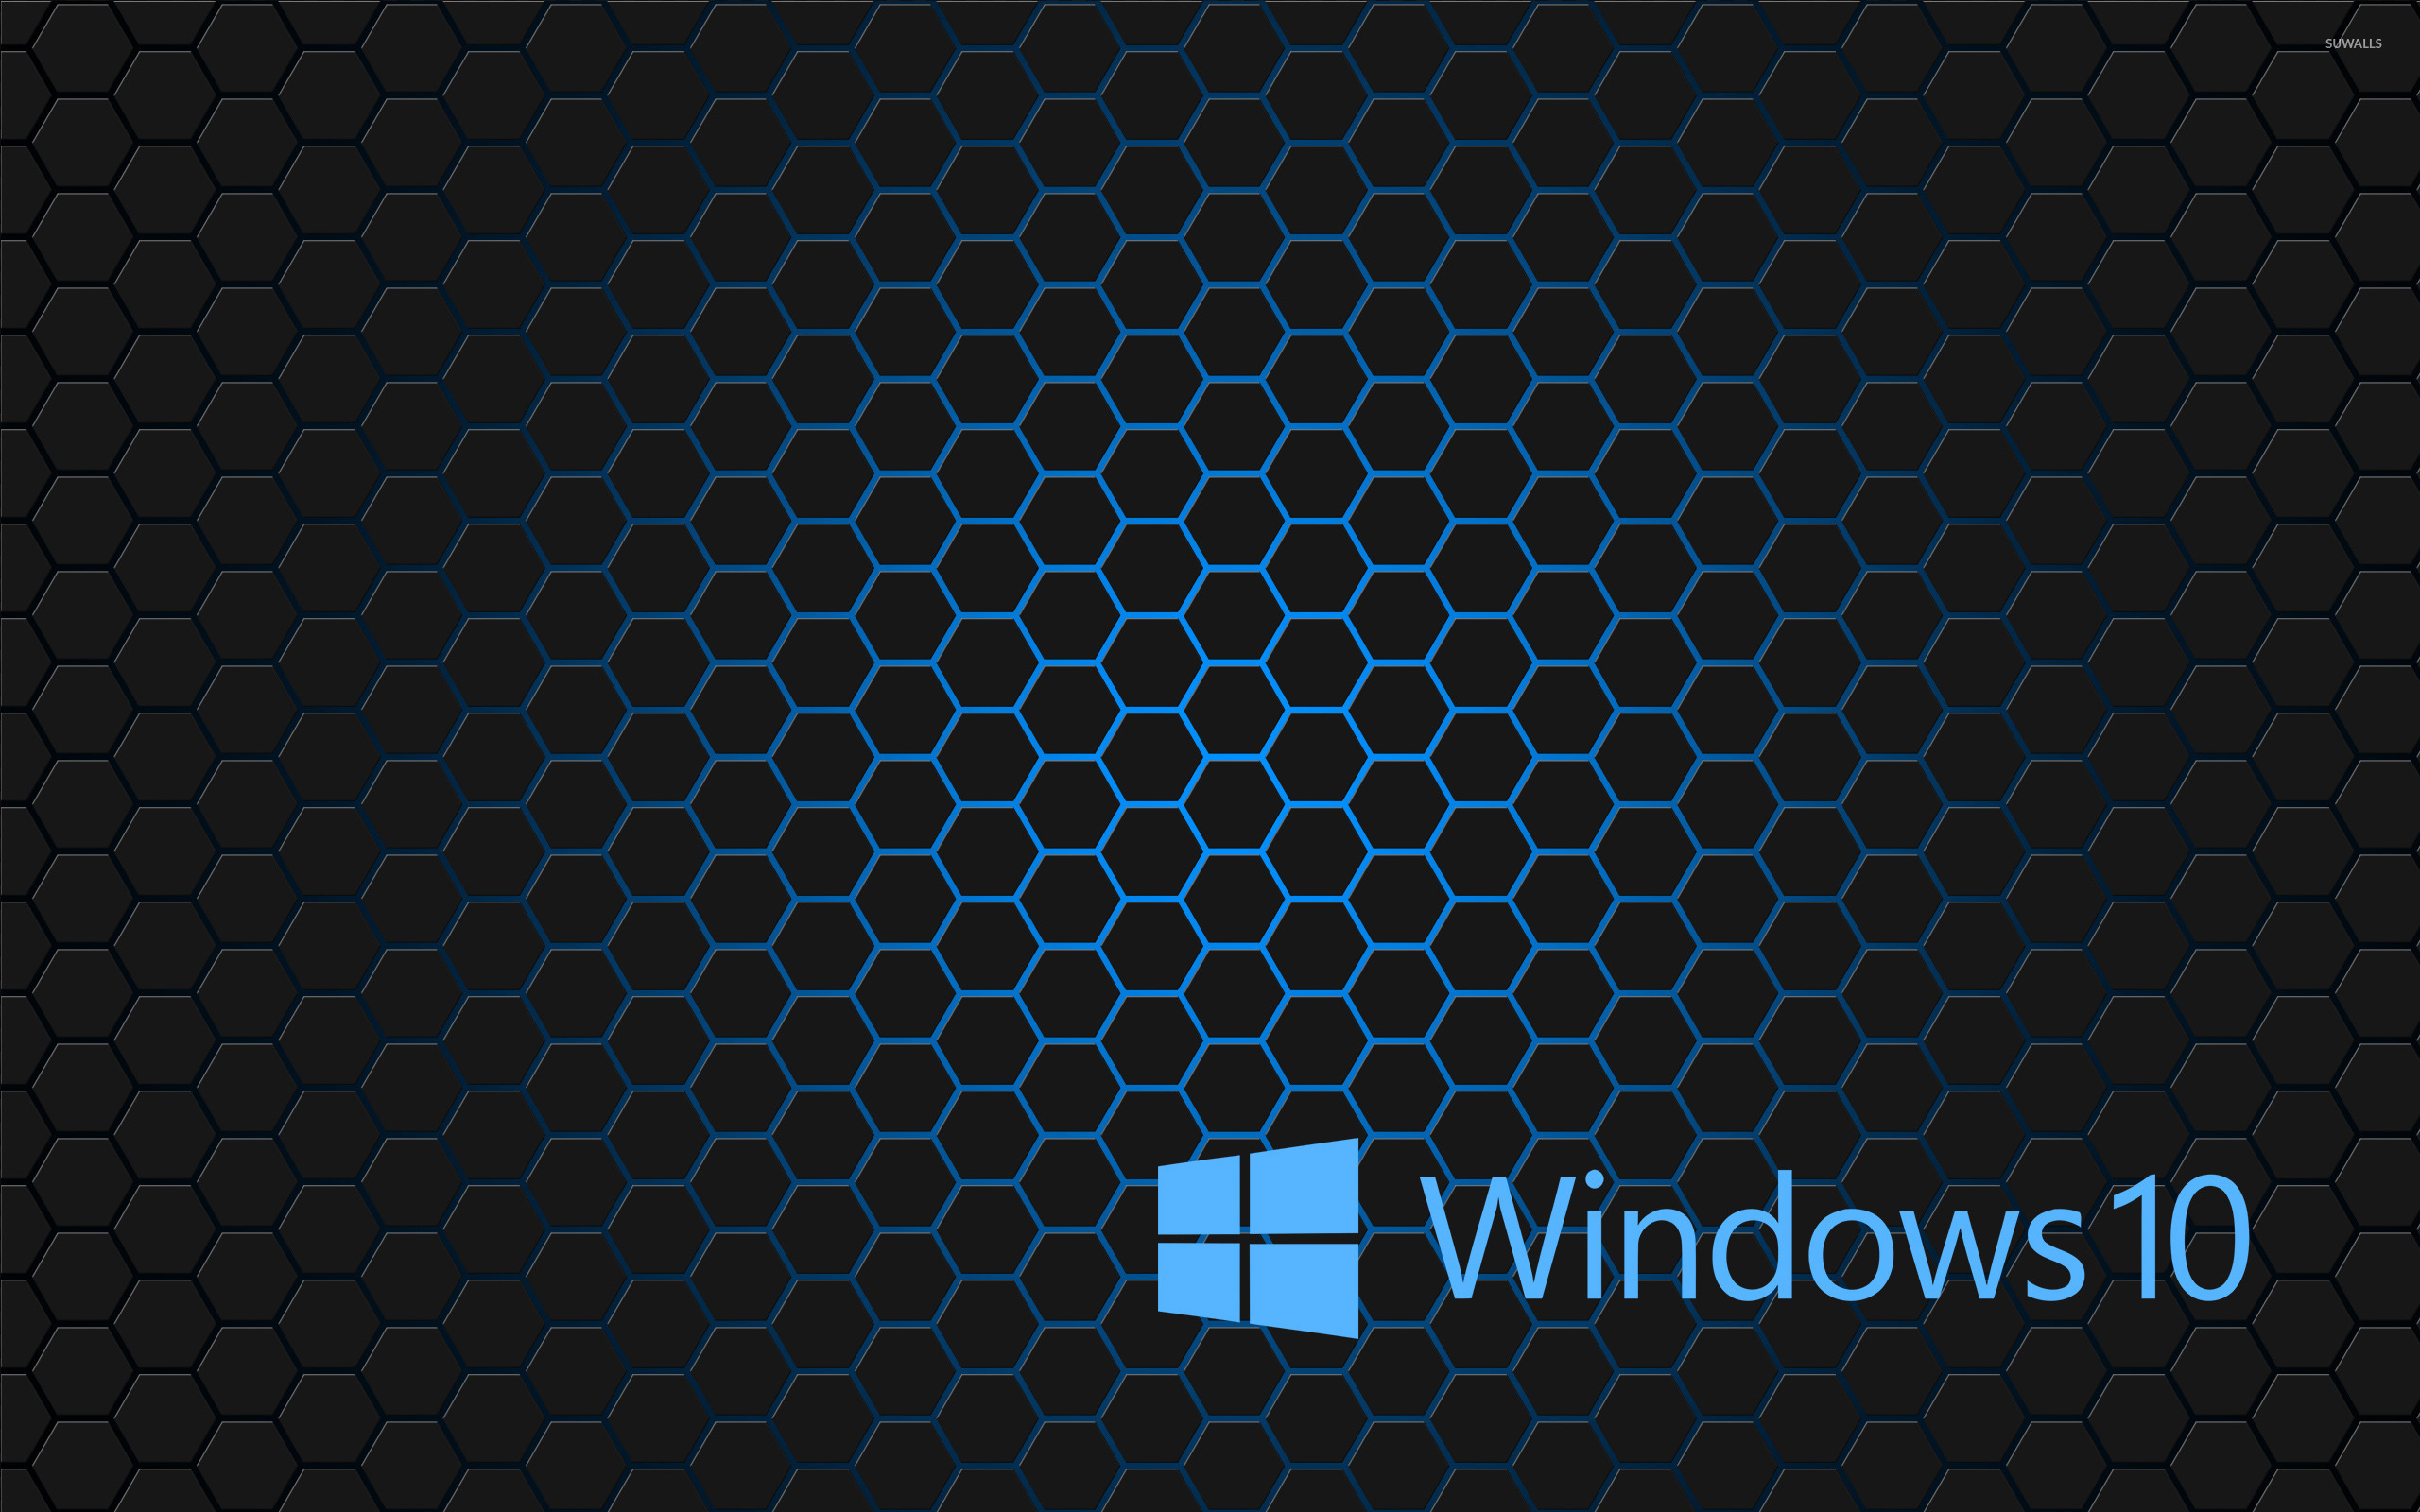 windows 10 blue text logo on hexagons wallpaper - computer